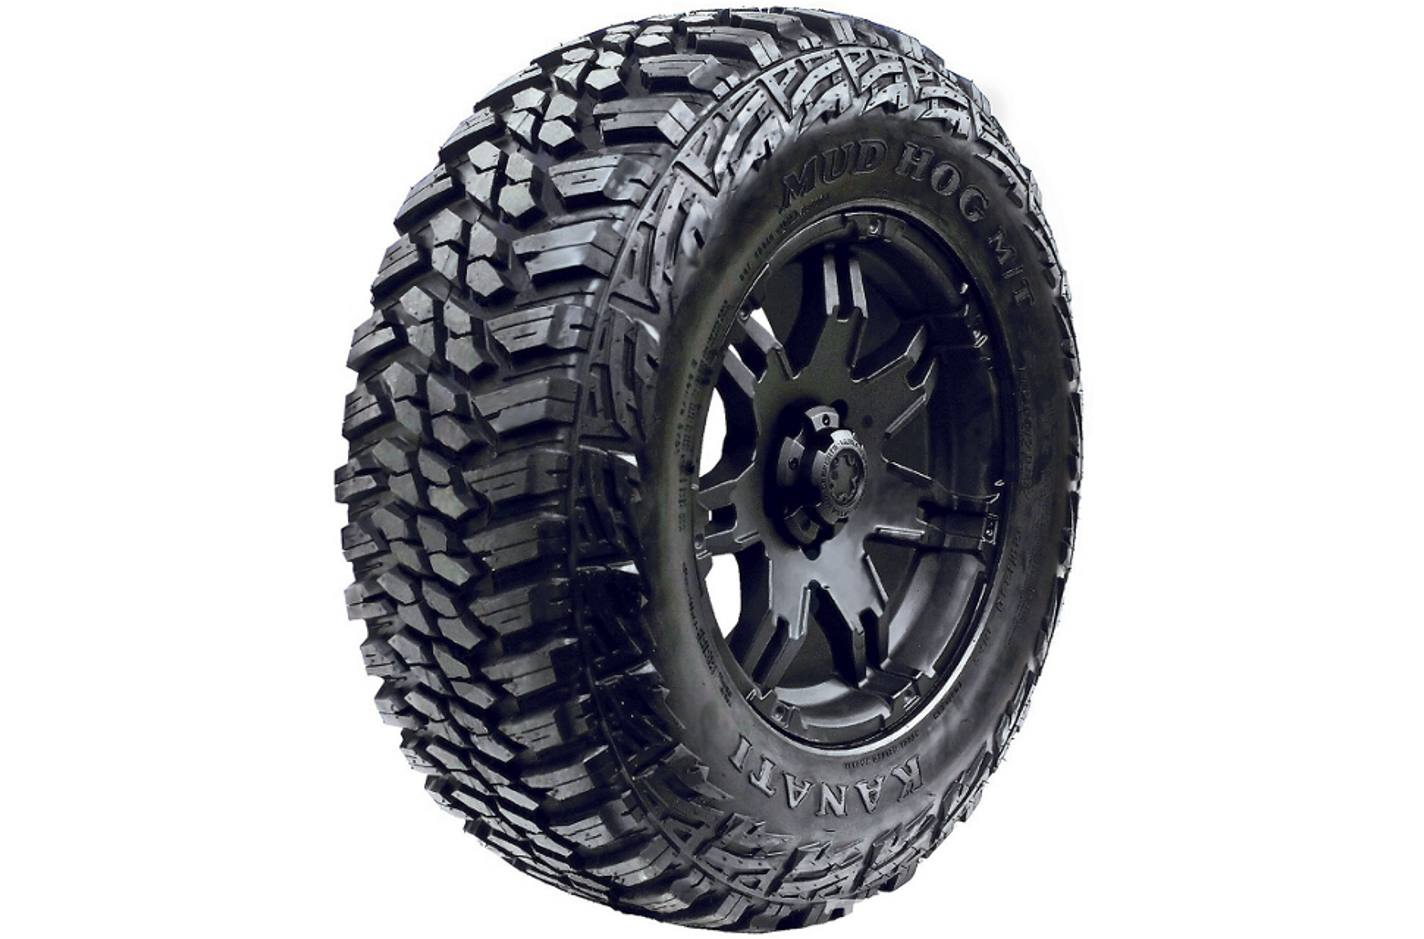 Kanati Mud Hog Tire, Best Mud tire for the street